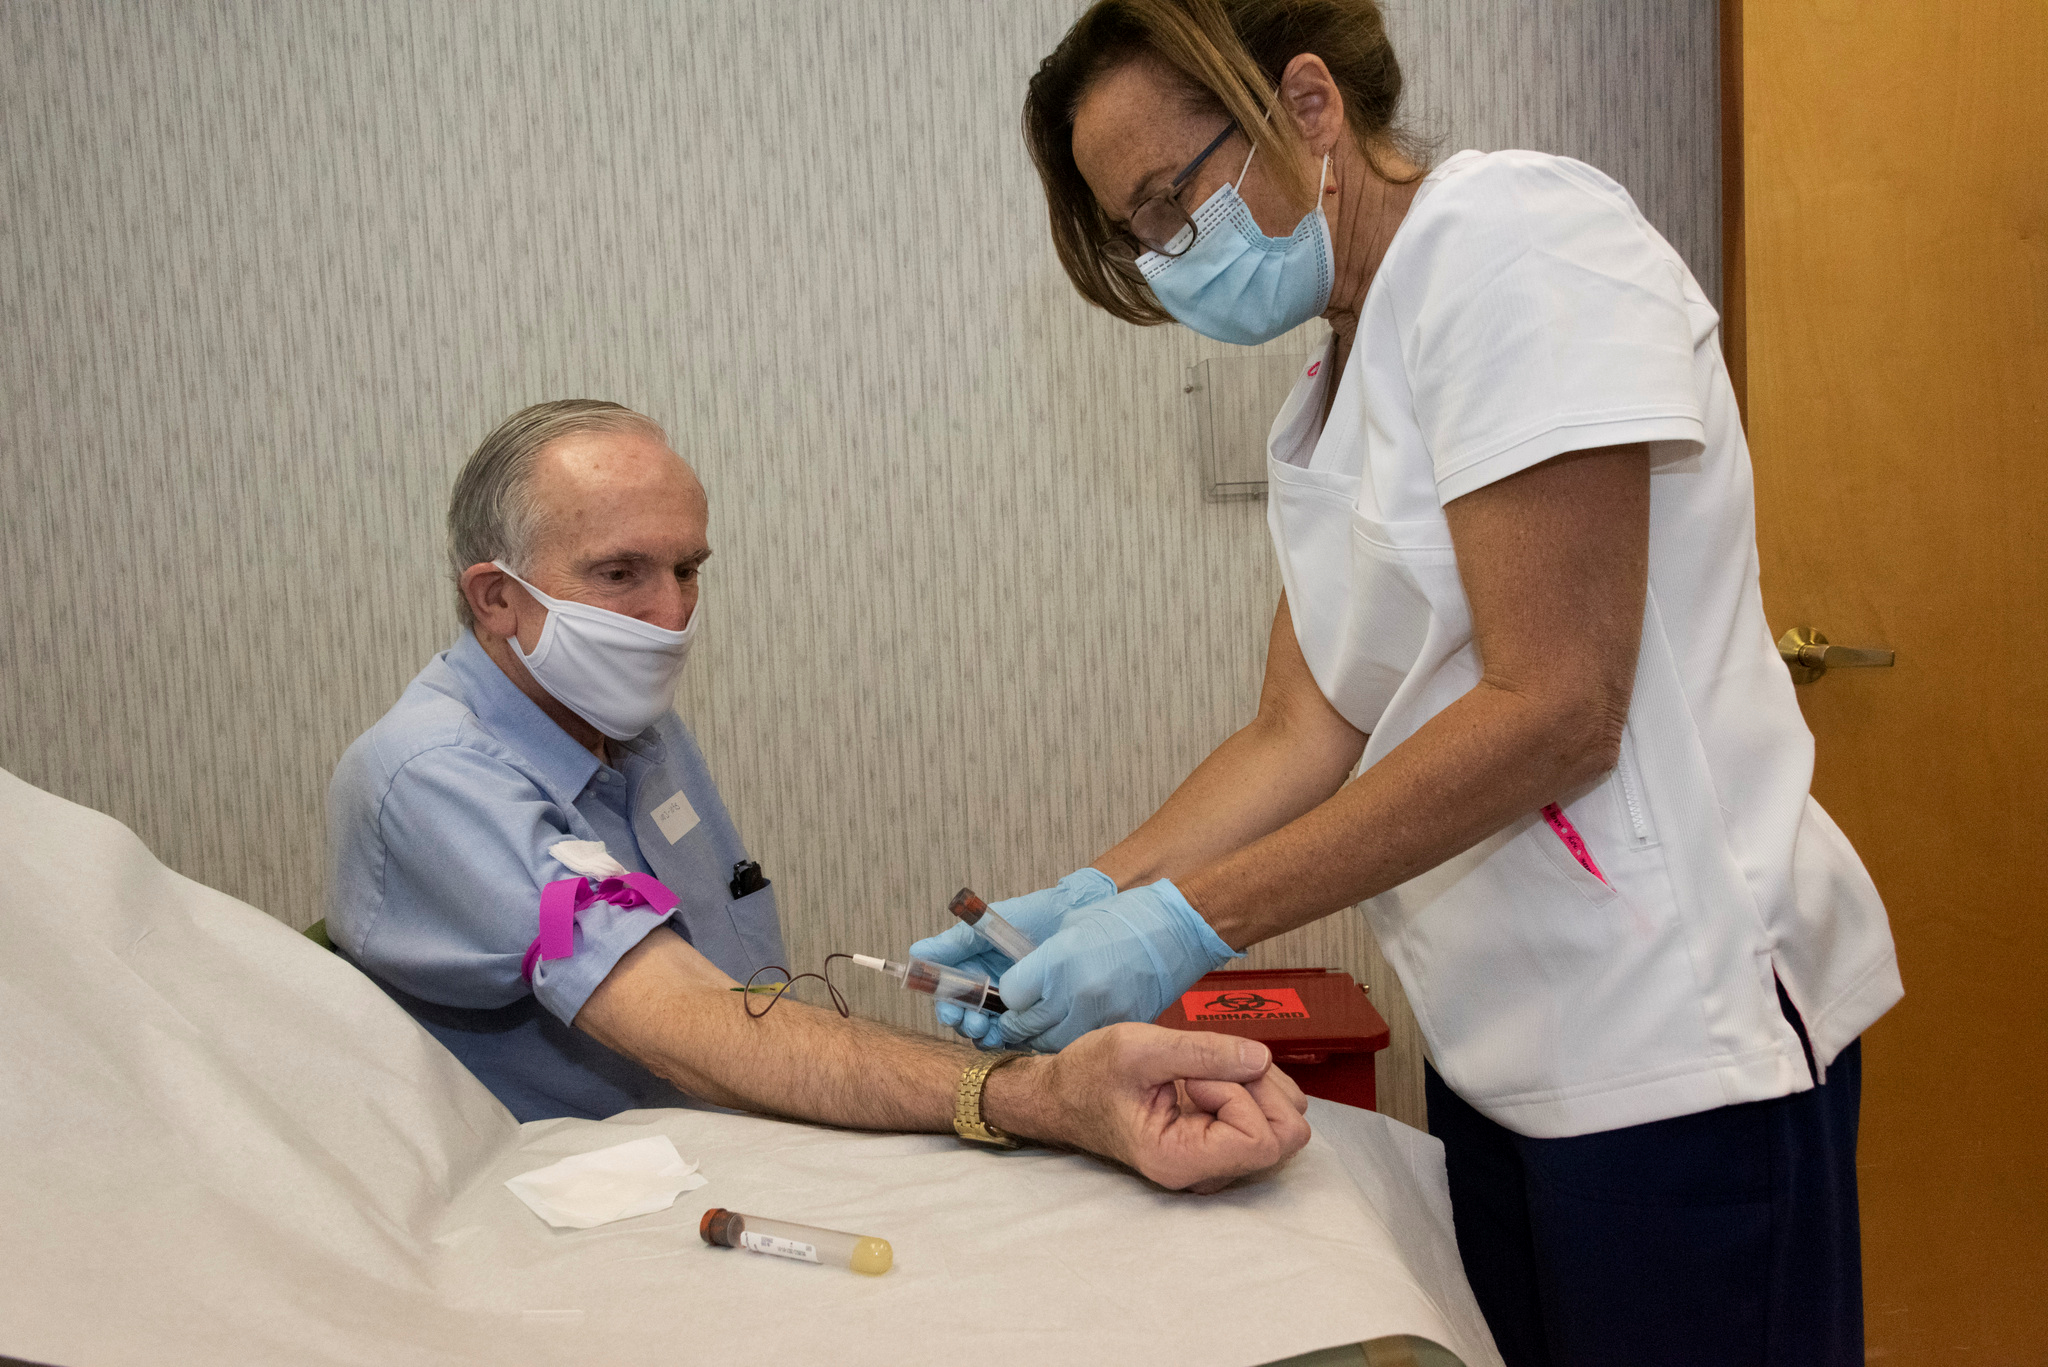 Raymond Grosswirth, a participant in a Phase 3 clinical trial for a COVID-19 vaccine.